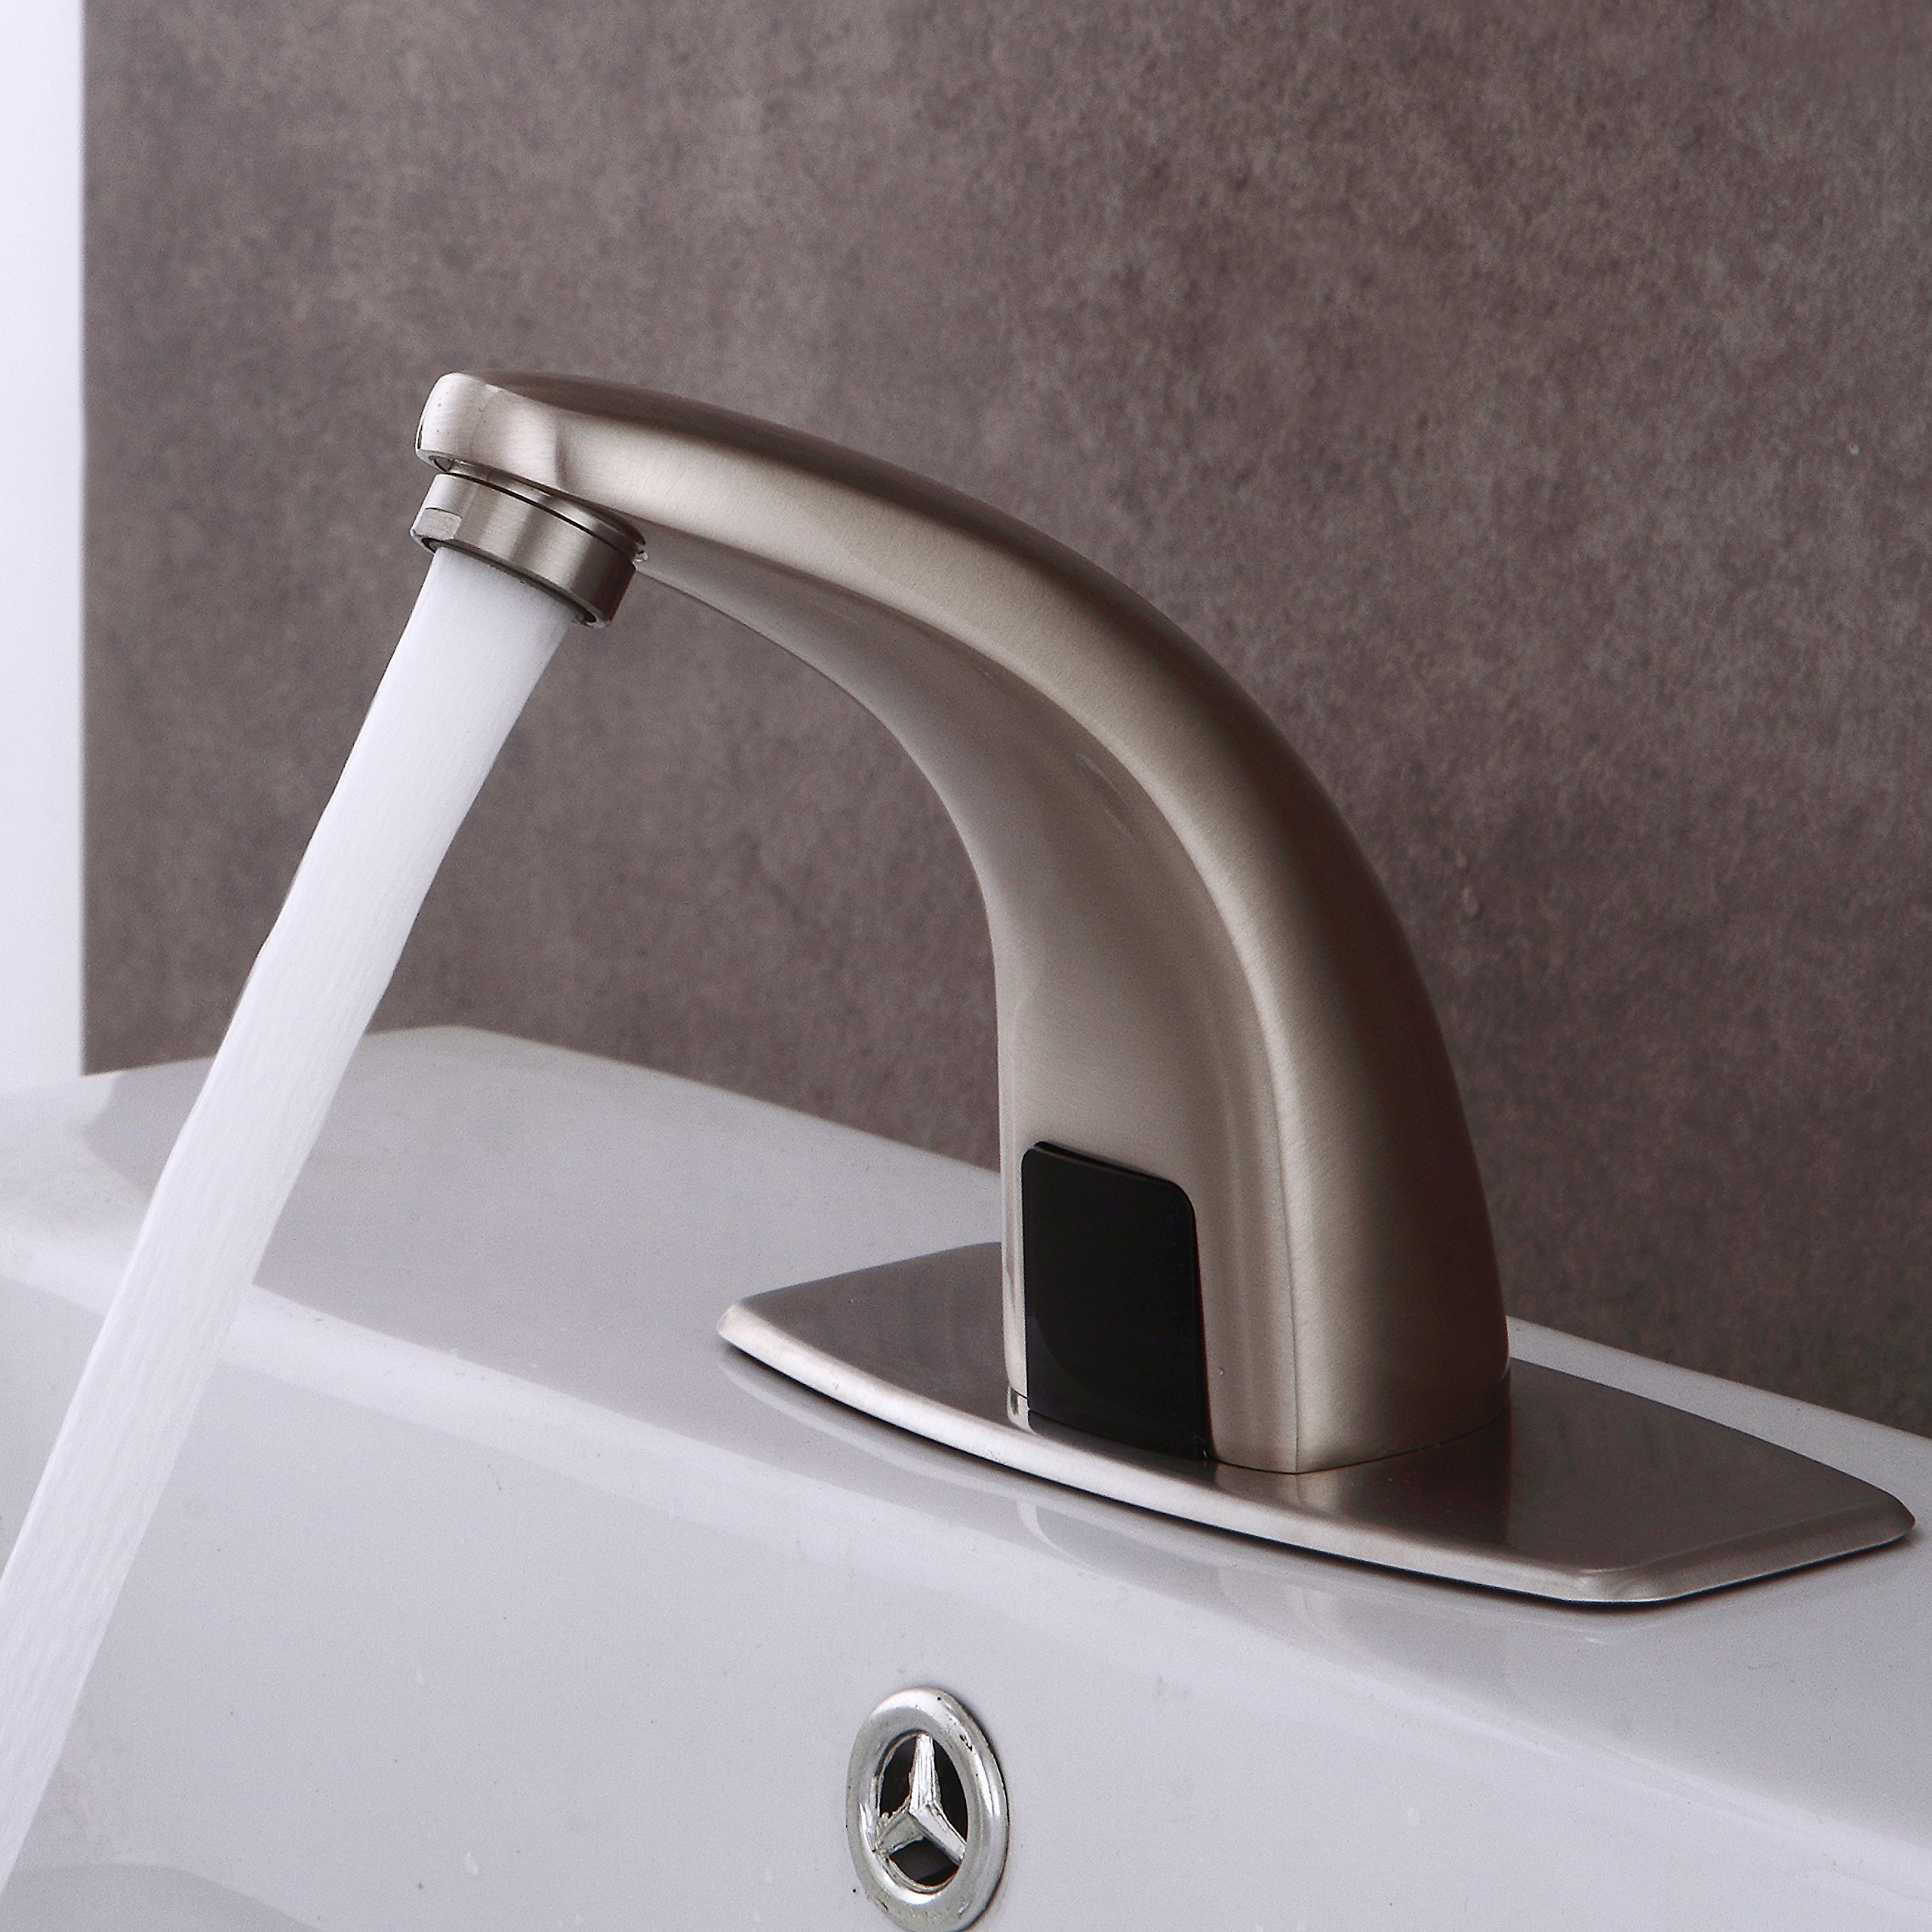 Fyeer Automatic Sensor Touchless Bathroom Sink Faucet with Hole ...